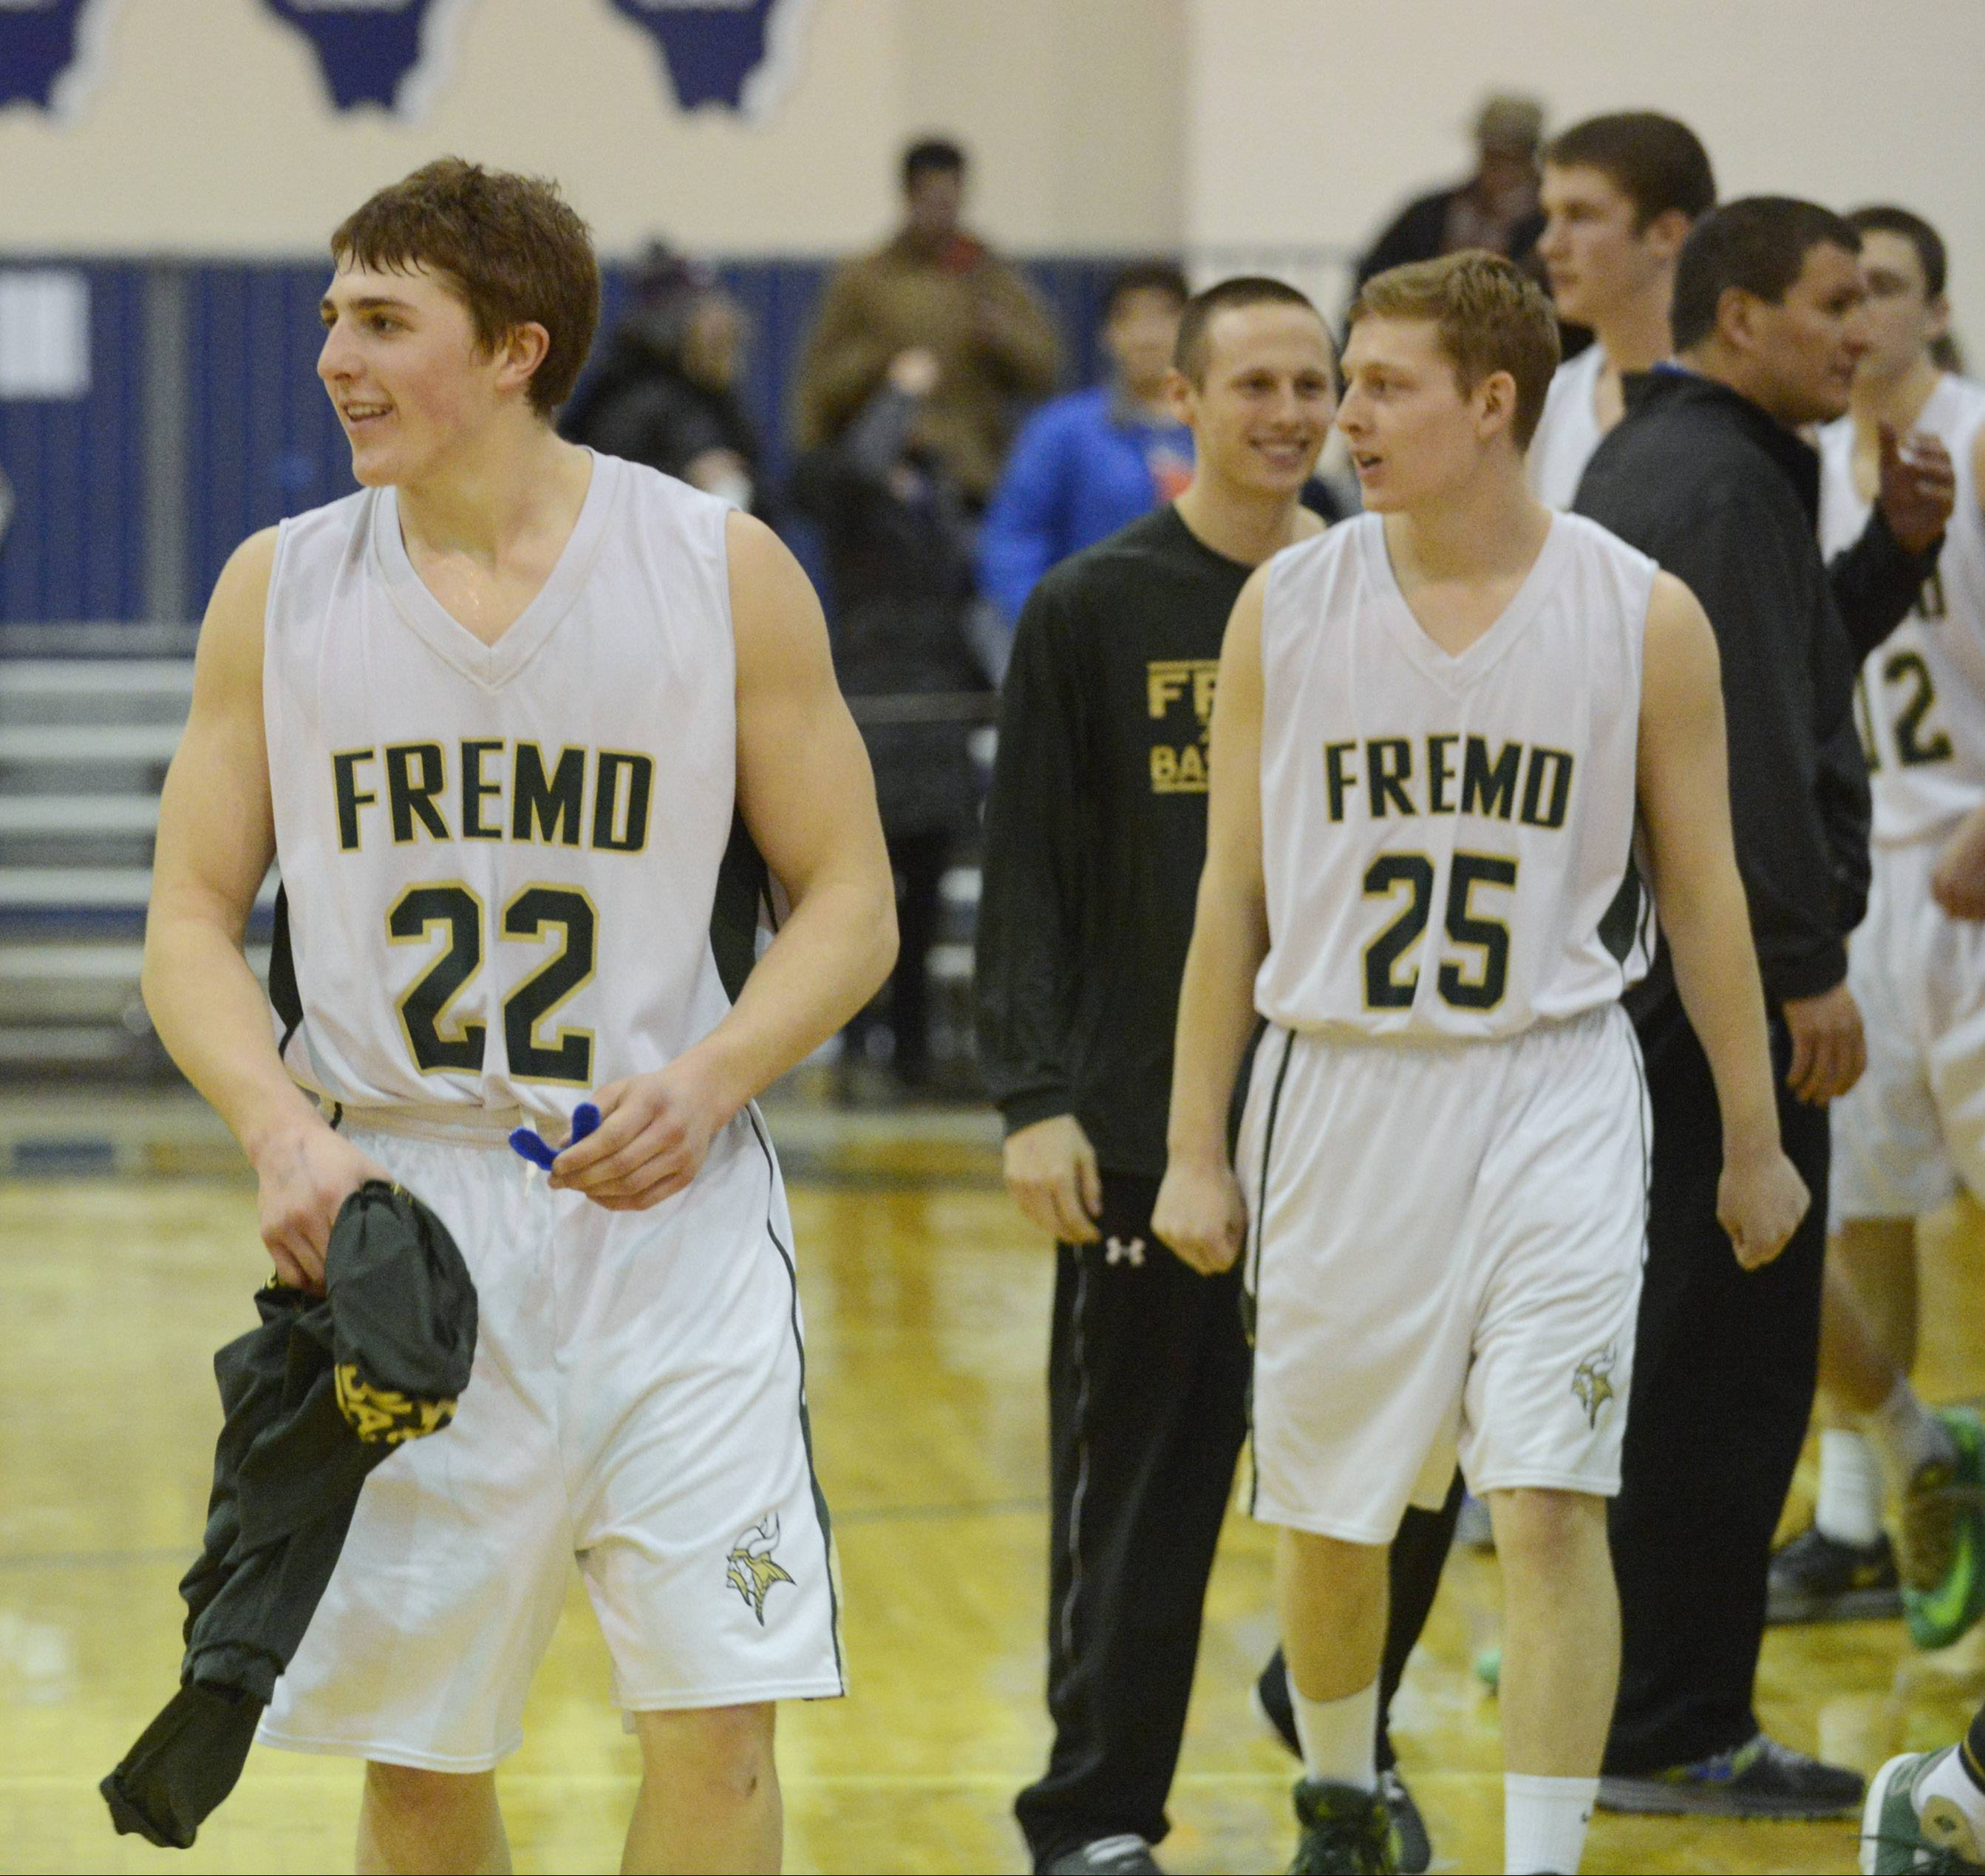 Photos from the Fremd vs. Highland Park boys Class 4A sectional semifinals Wednesday, March 12, in Lake Zurich.